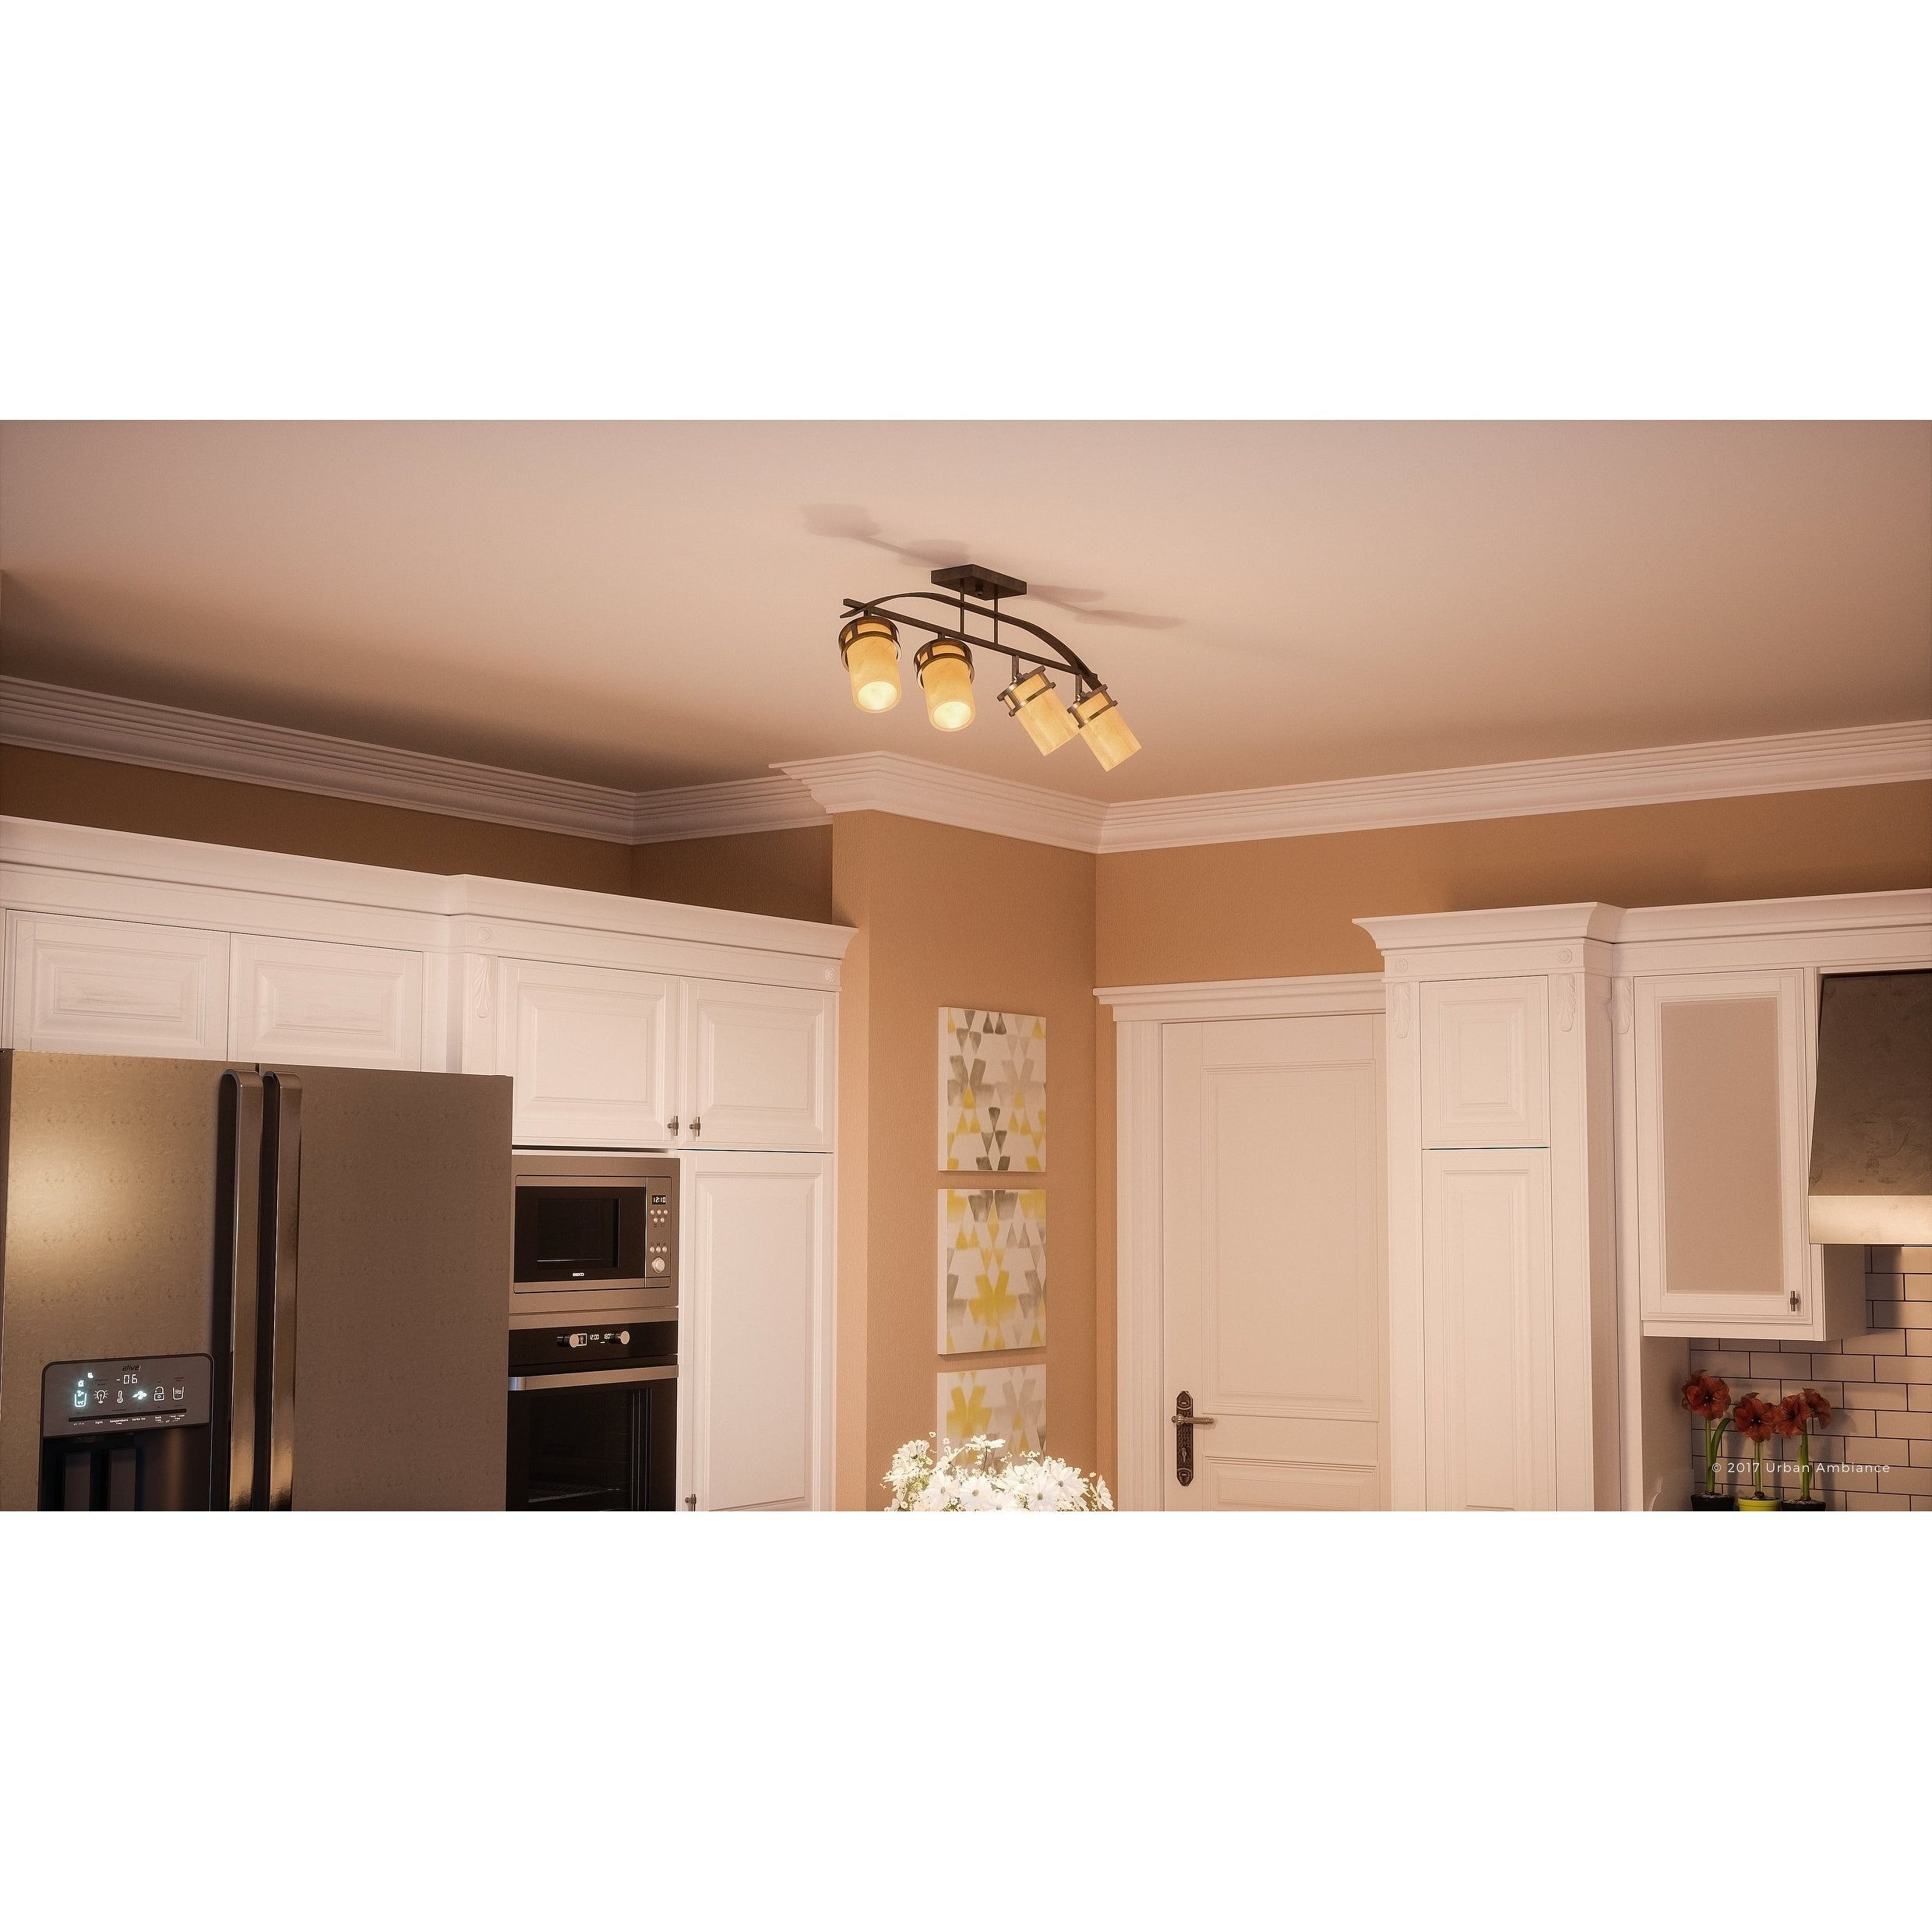 Luxury Rustic Track Lighting 14 5 H X 36 W With Craftsman Style Banded Wrought Iron Design Royal Bronze Finish